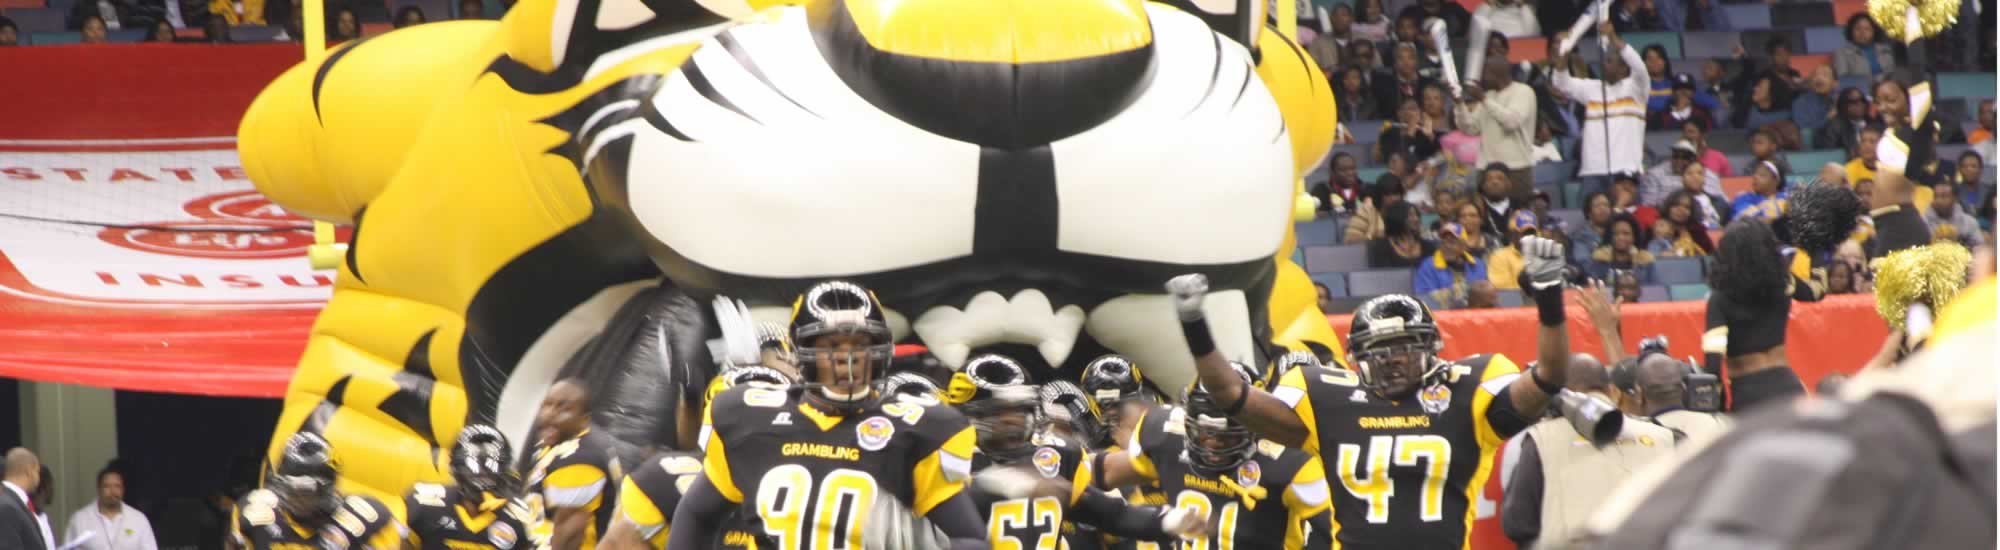 Cheer the Grambling State University G-Men!